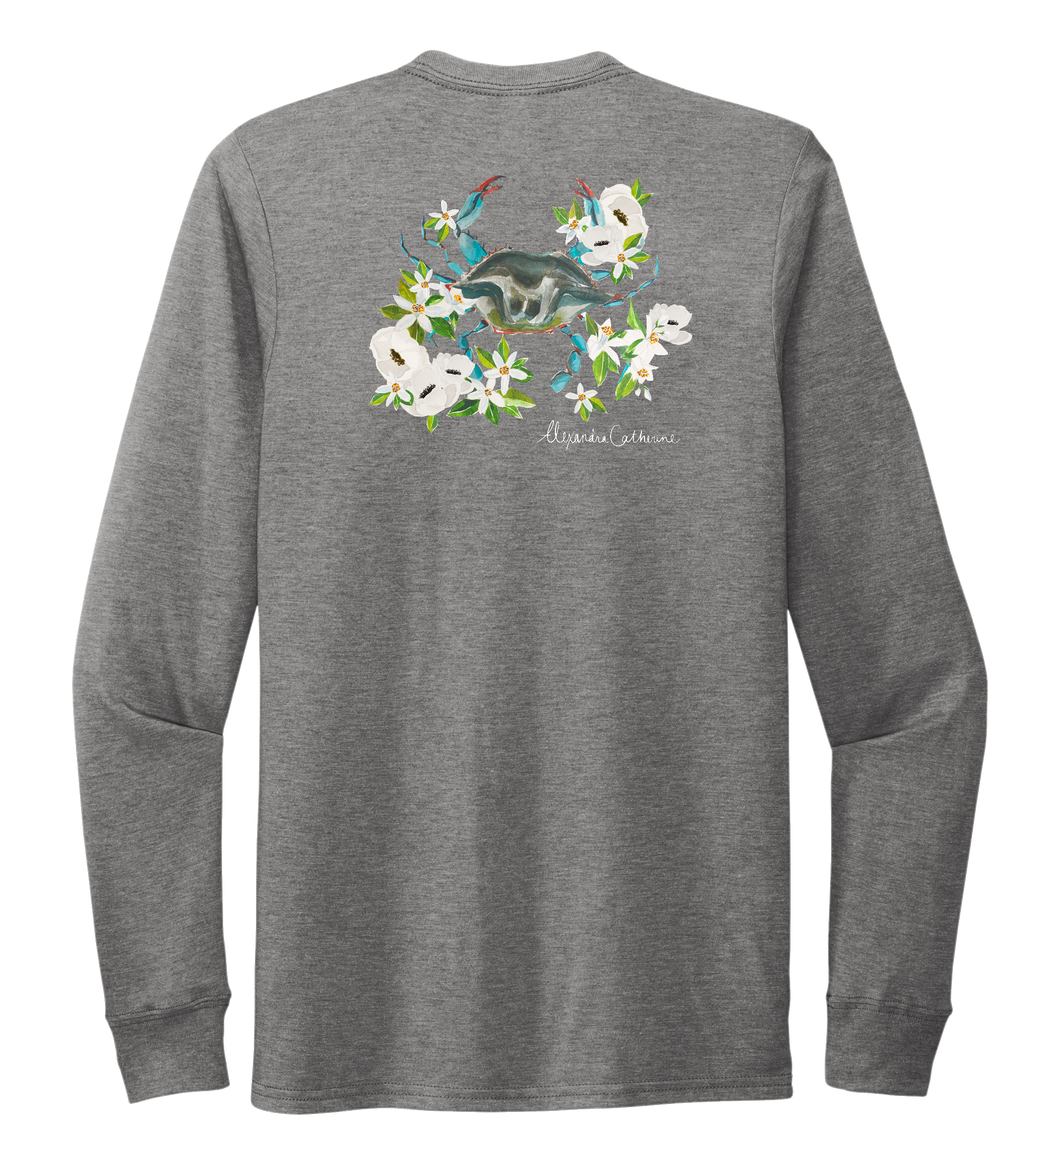 Alexandra Catherine, Blue Crab, Unisex Crew Neck Long Sleeve T-shirt in Oyster Grey